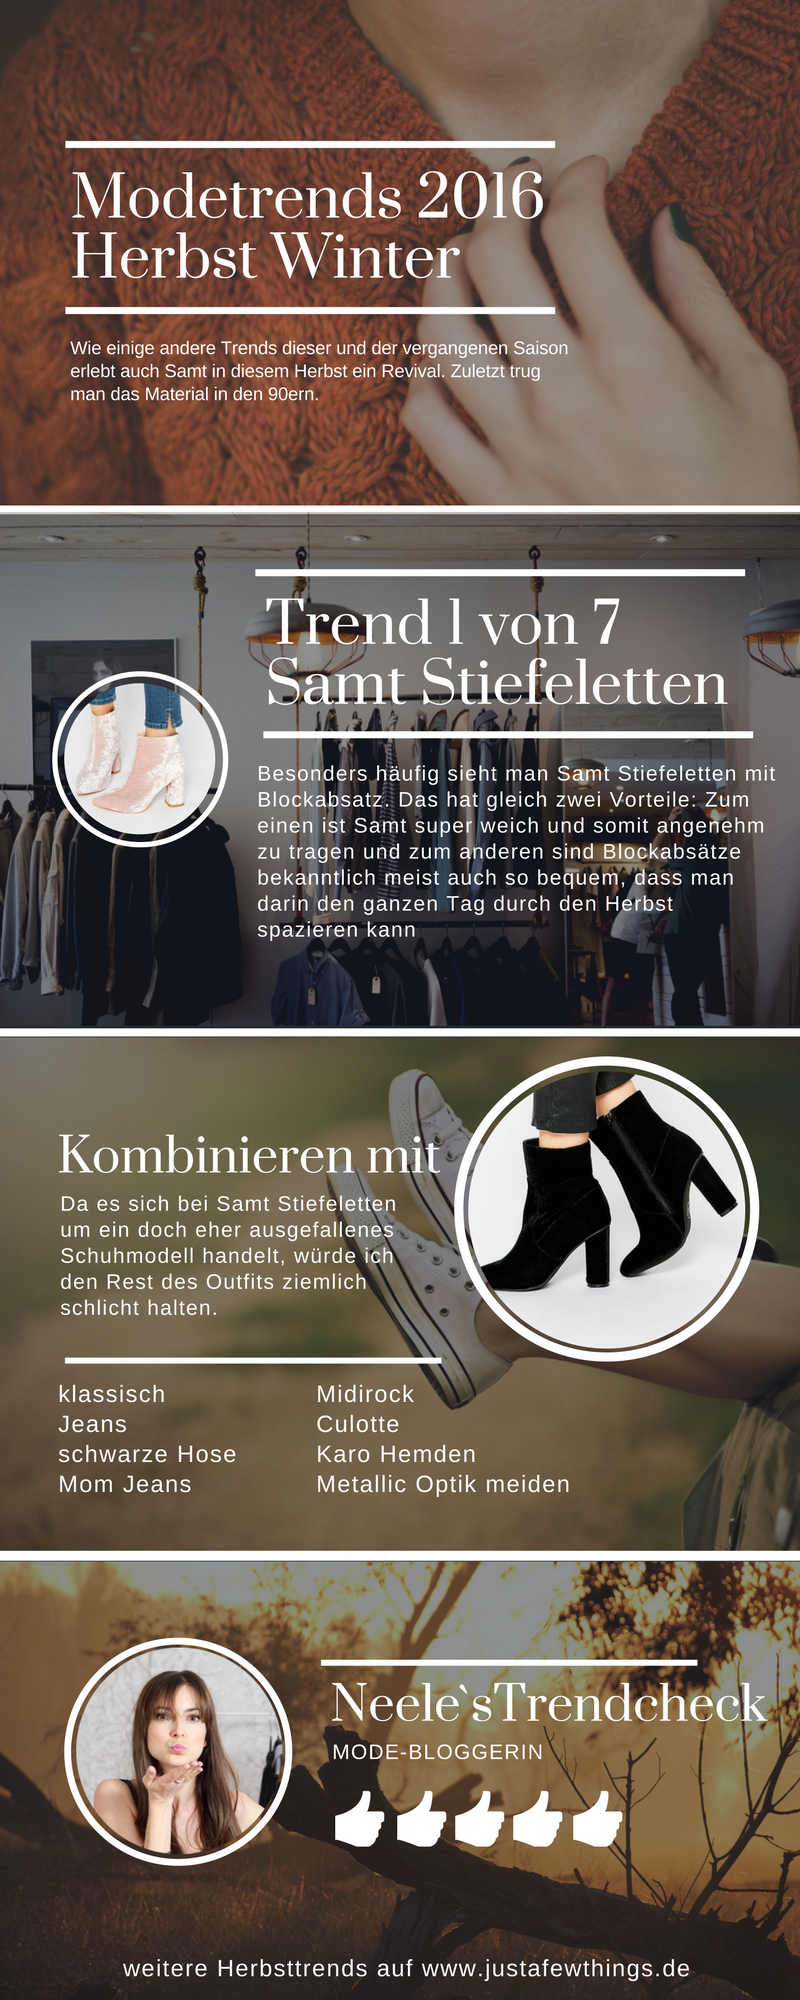 samt stiefeletten modetrends herbst winter 2016 just a few things der modeblog aus. Black Bedroom Furniture Sets. Home Design Ideas